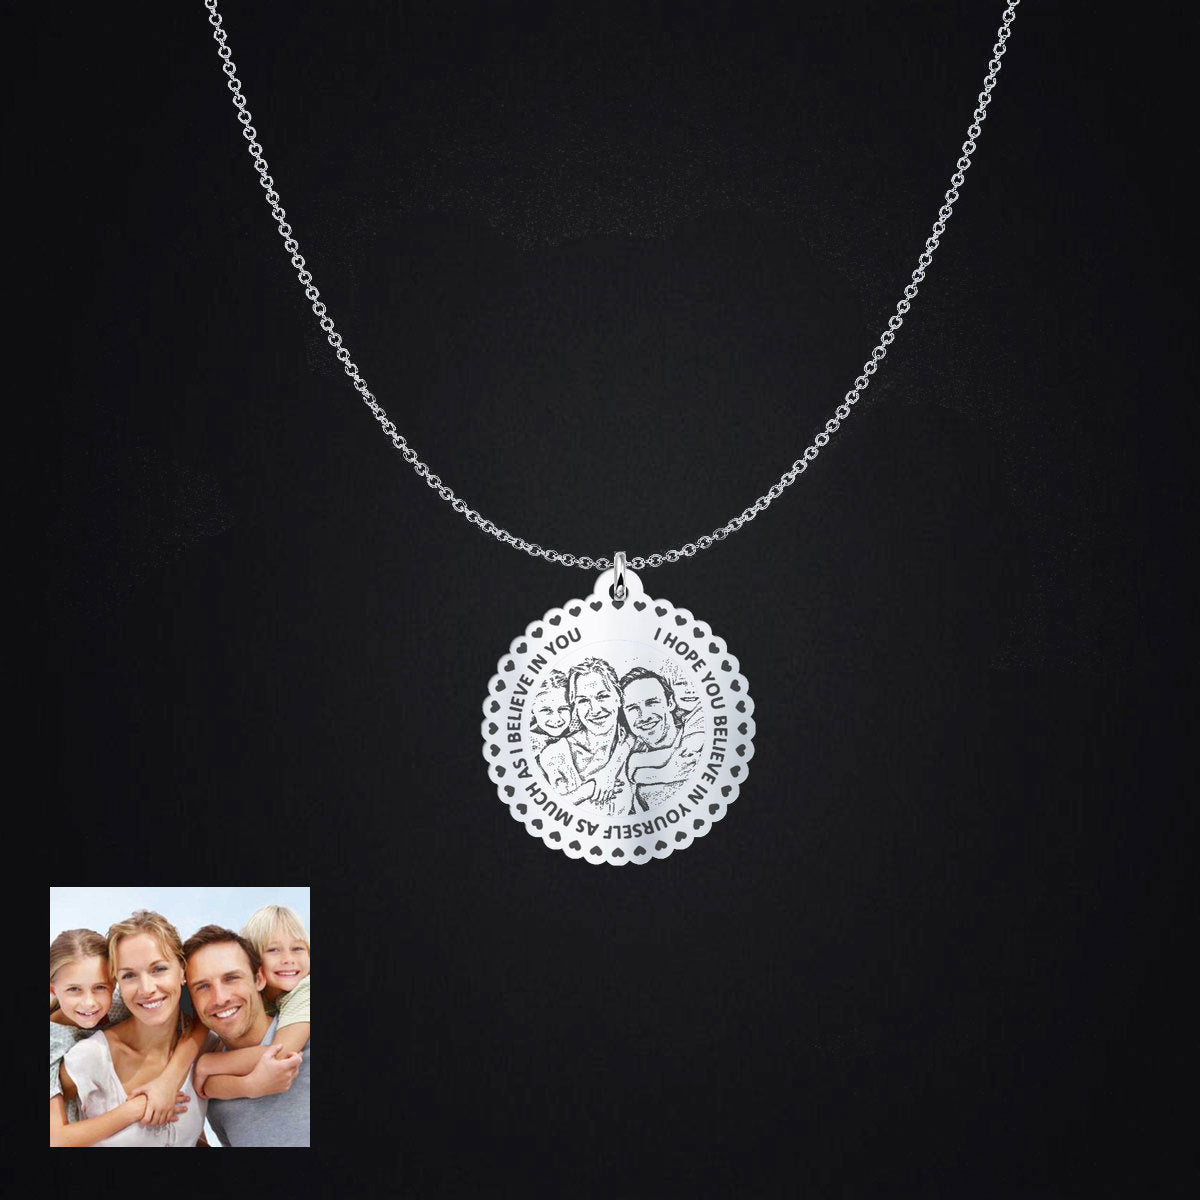 Photo Pendant I Believe In You